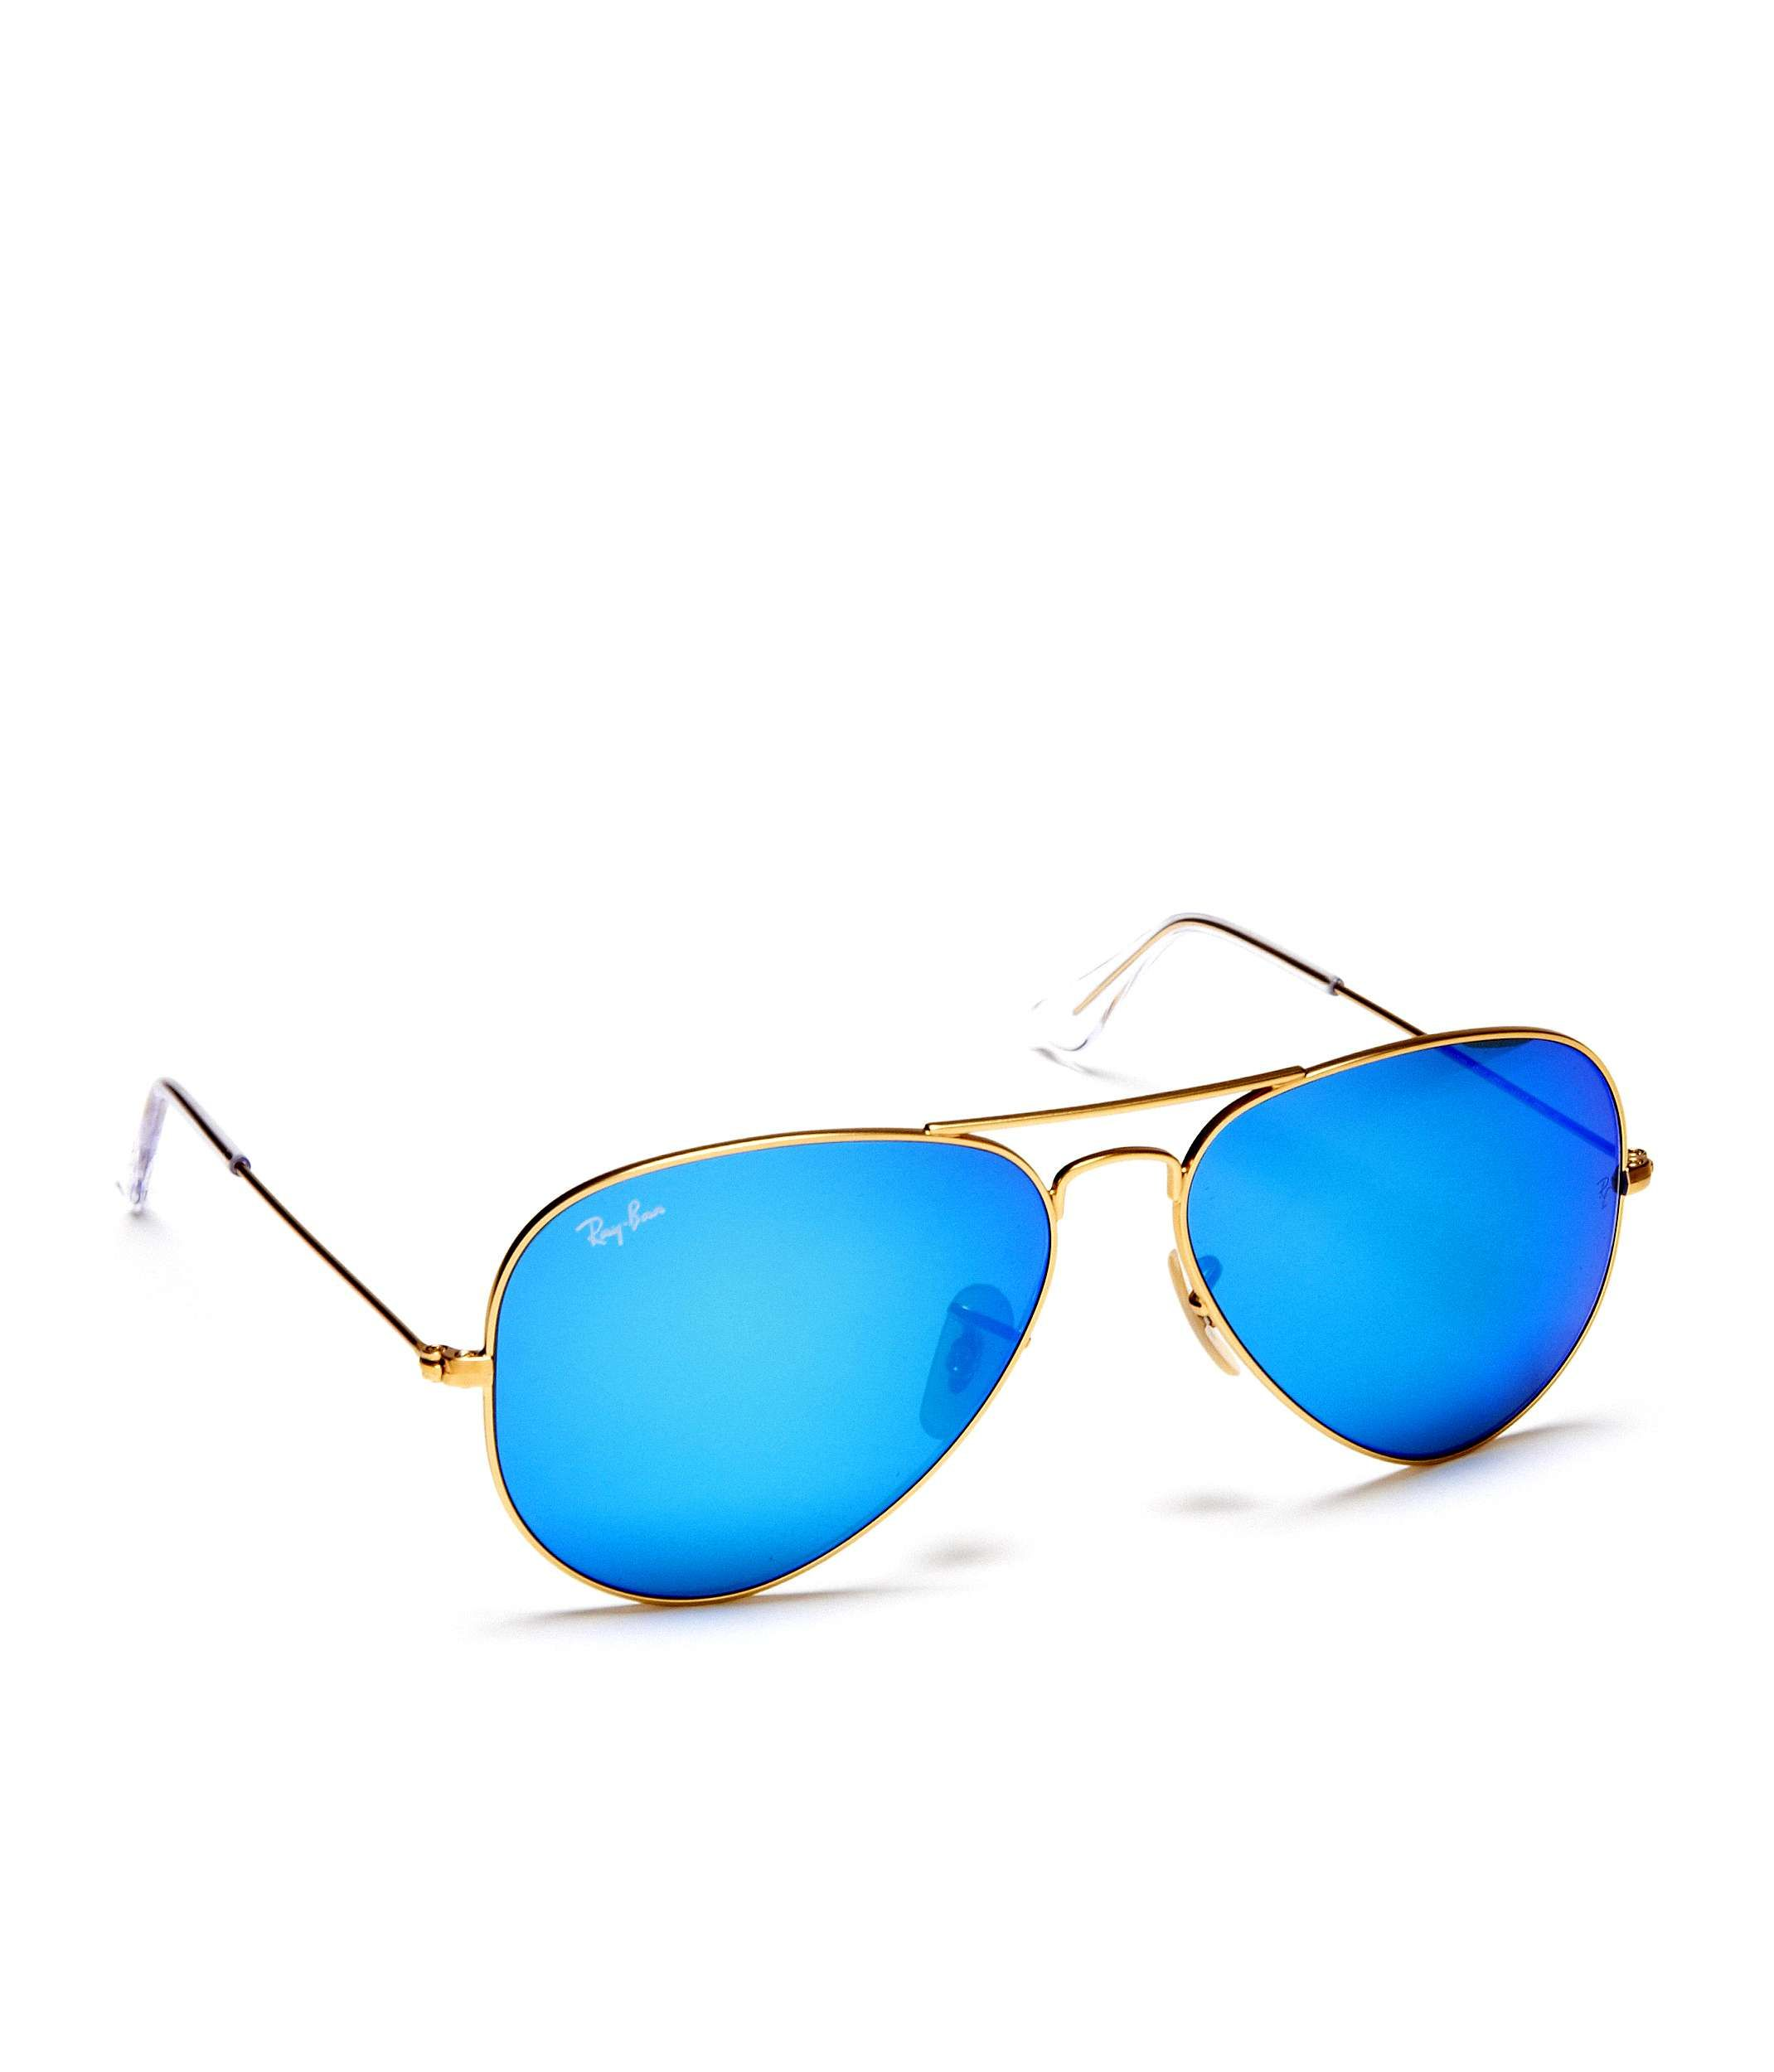 4489f16360d Blue Ray-Ban Aviator Metal Mirrored Sunglasses -Umm these are amazing!!!